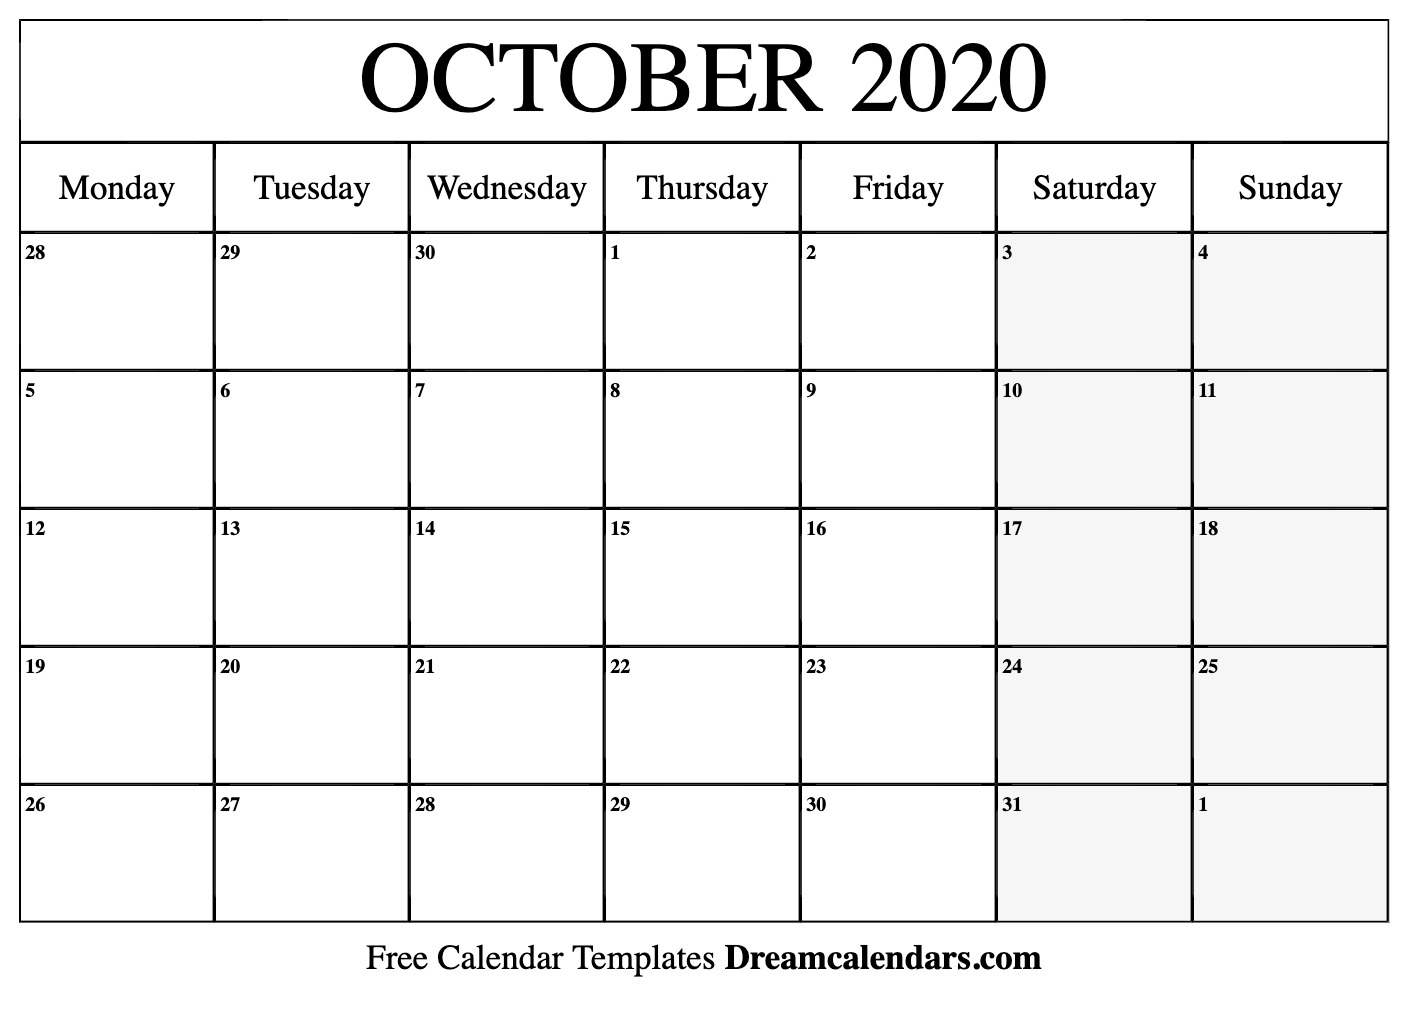 image about Printable Oct Calendar called Printable Oct 2020 Calendar